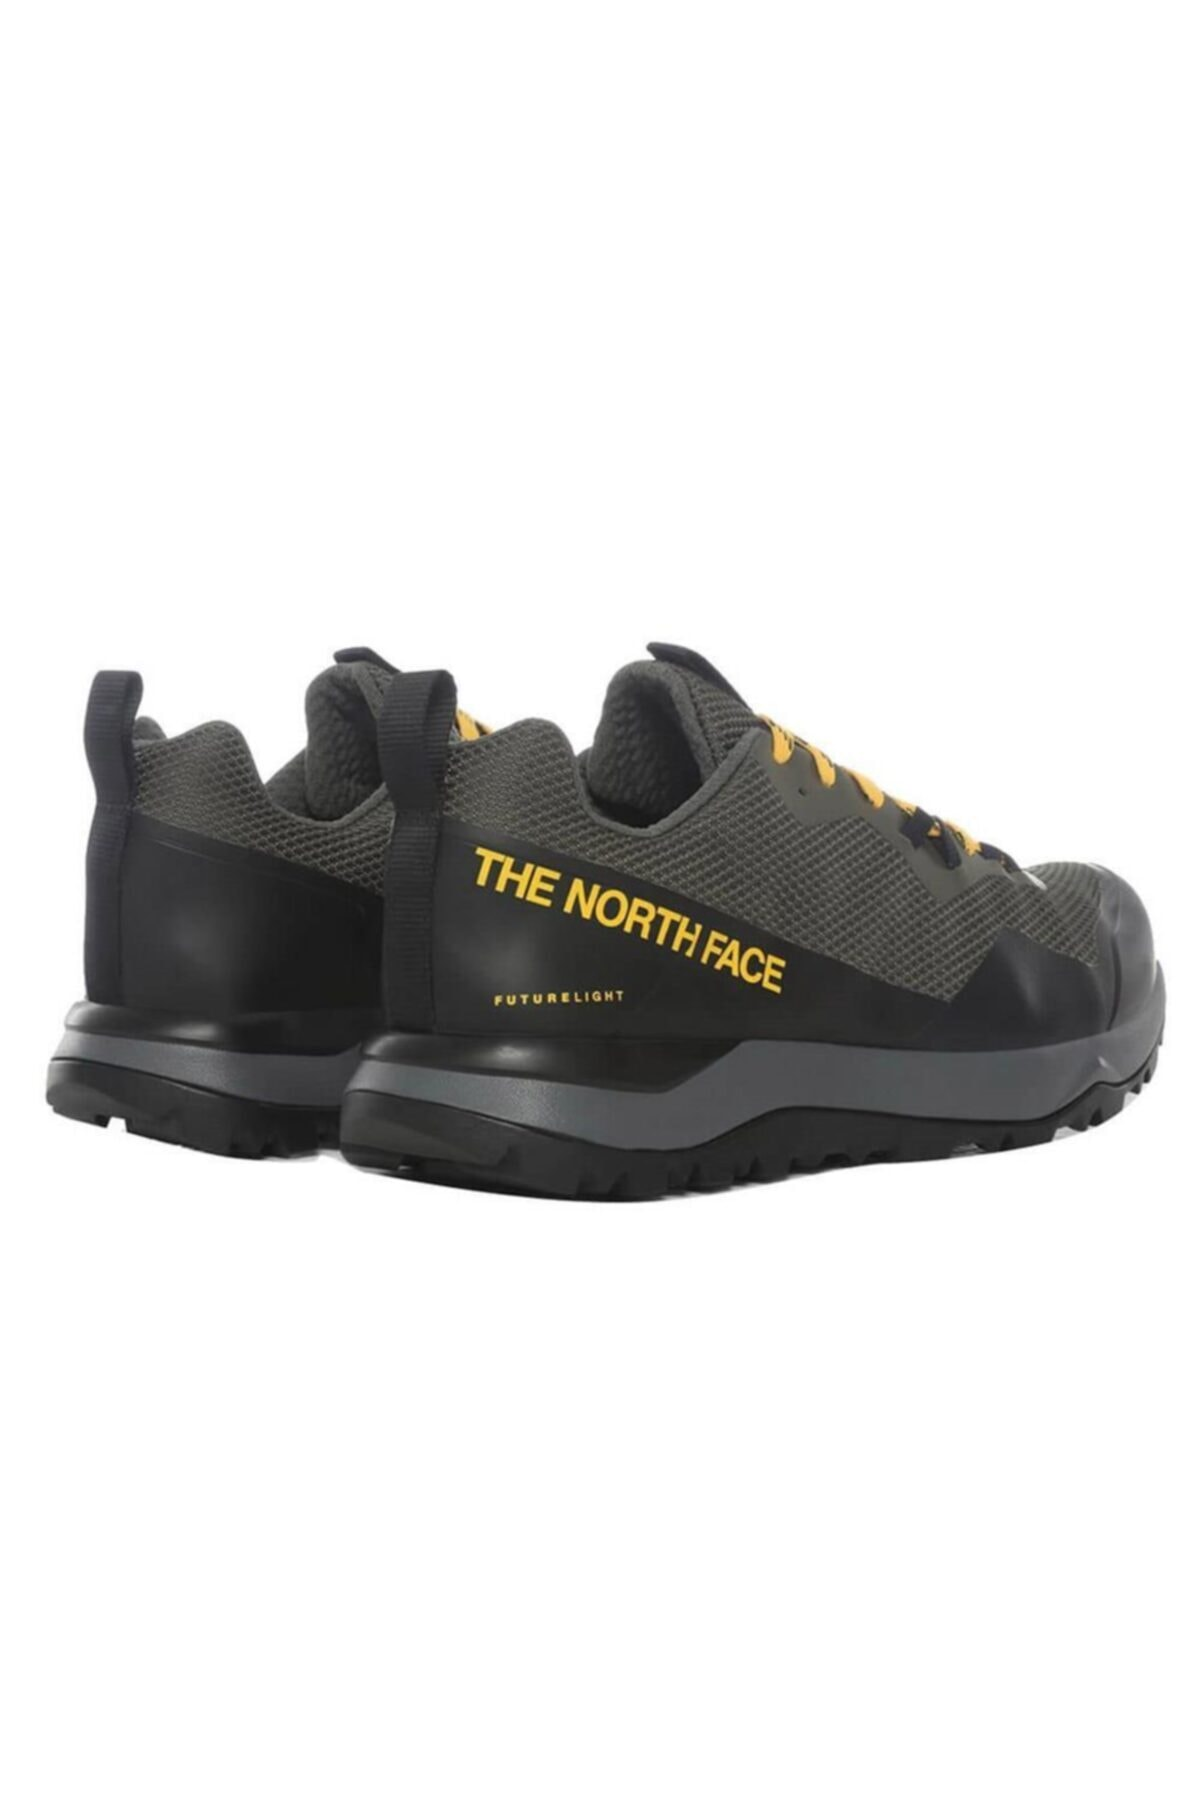 THE NORTH FACE Activist Futurelight Erkek Ayakkabı - T93yupbqw 2